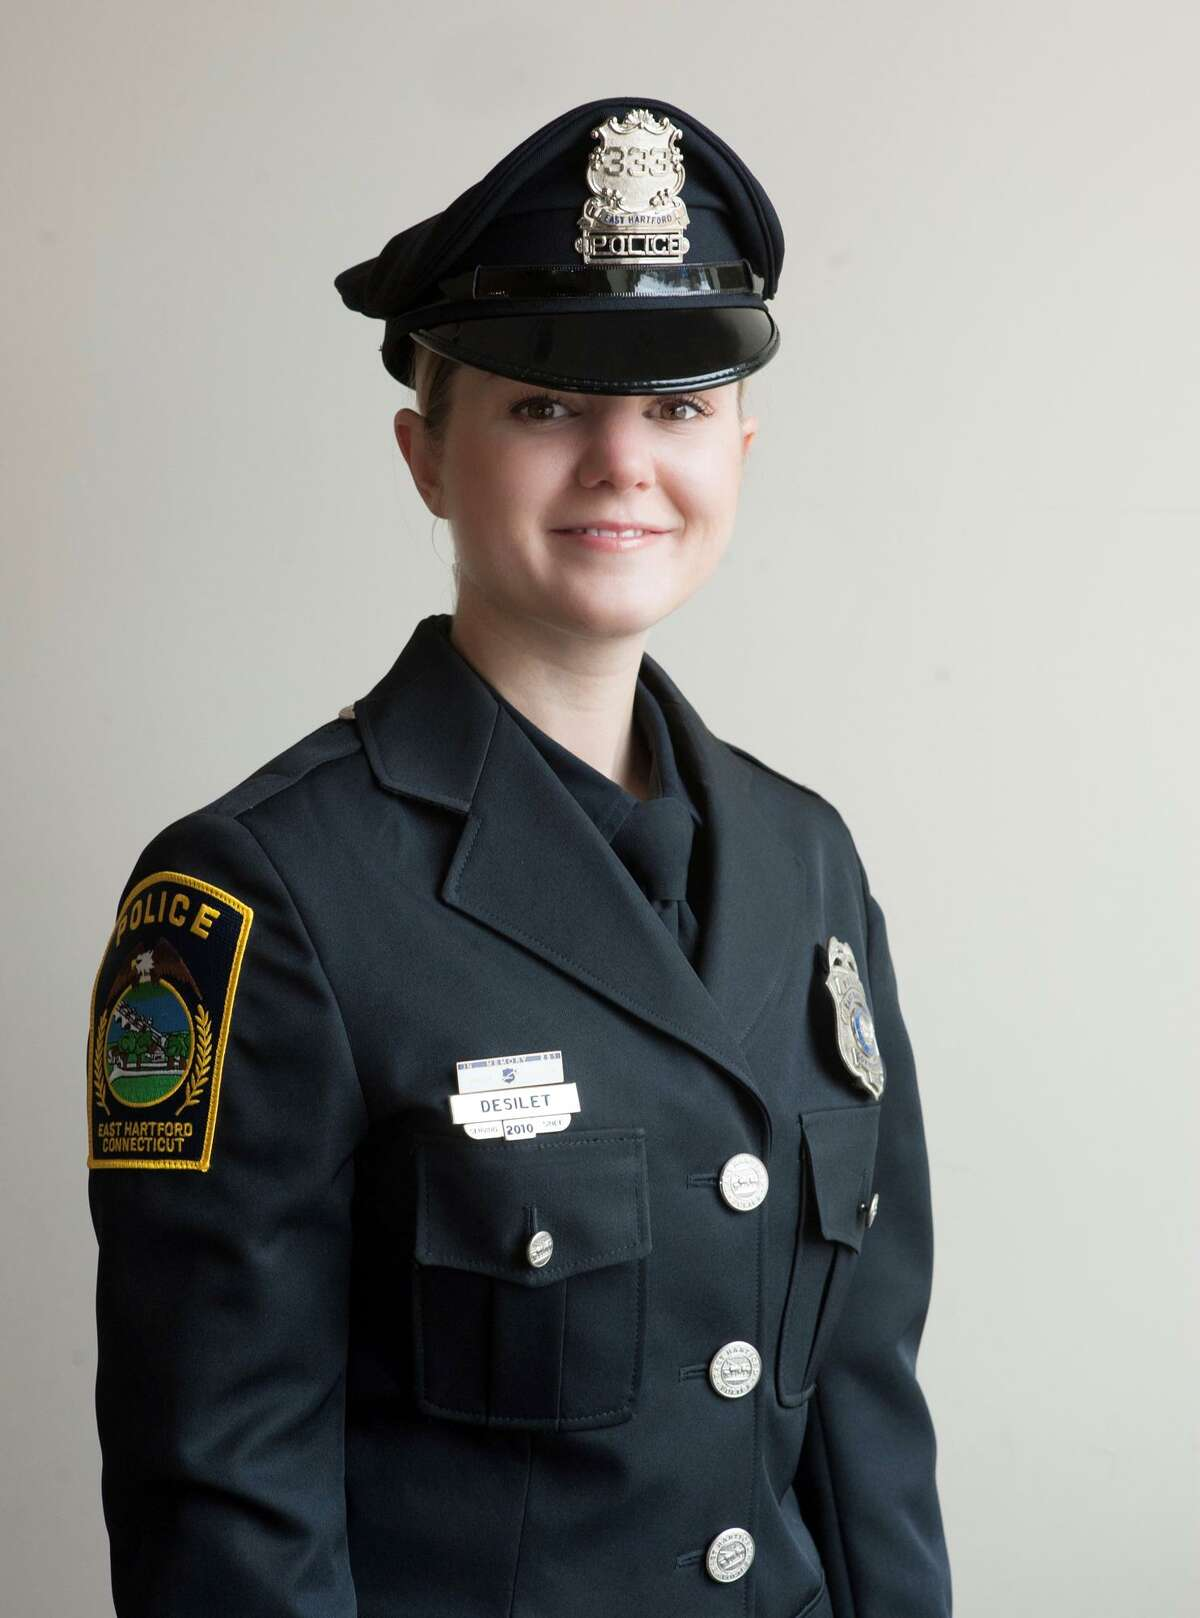 East Hartford Police Officer Courtney Desilet is a certified instructor of human trafficking investigations.